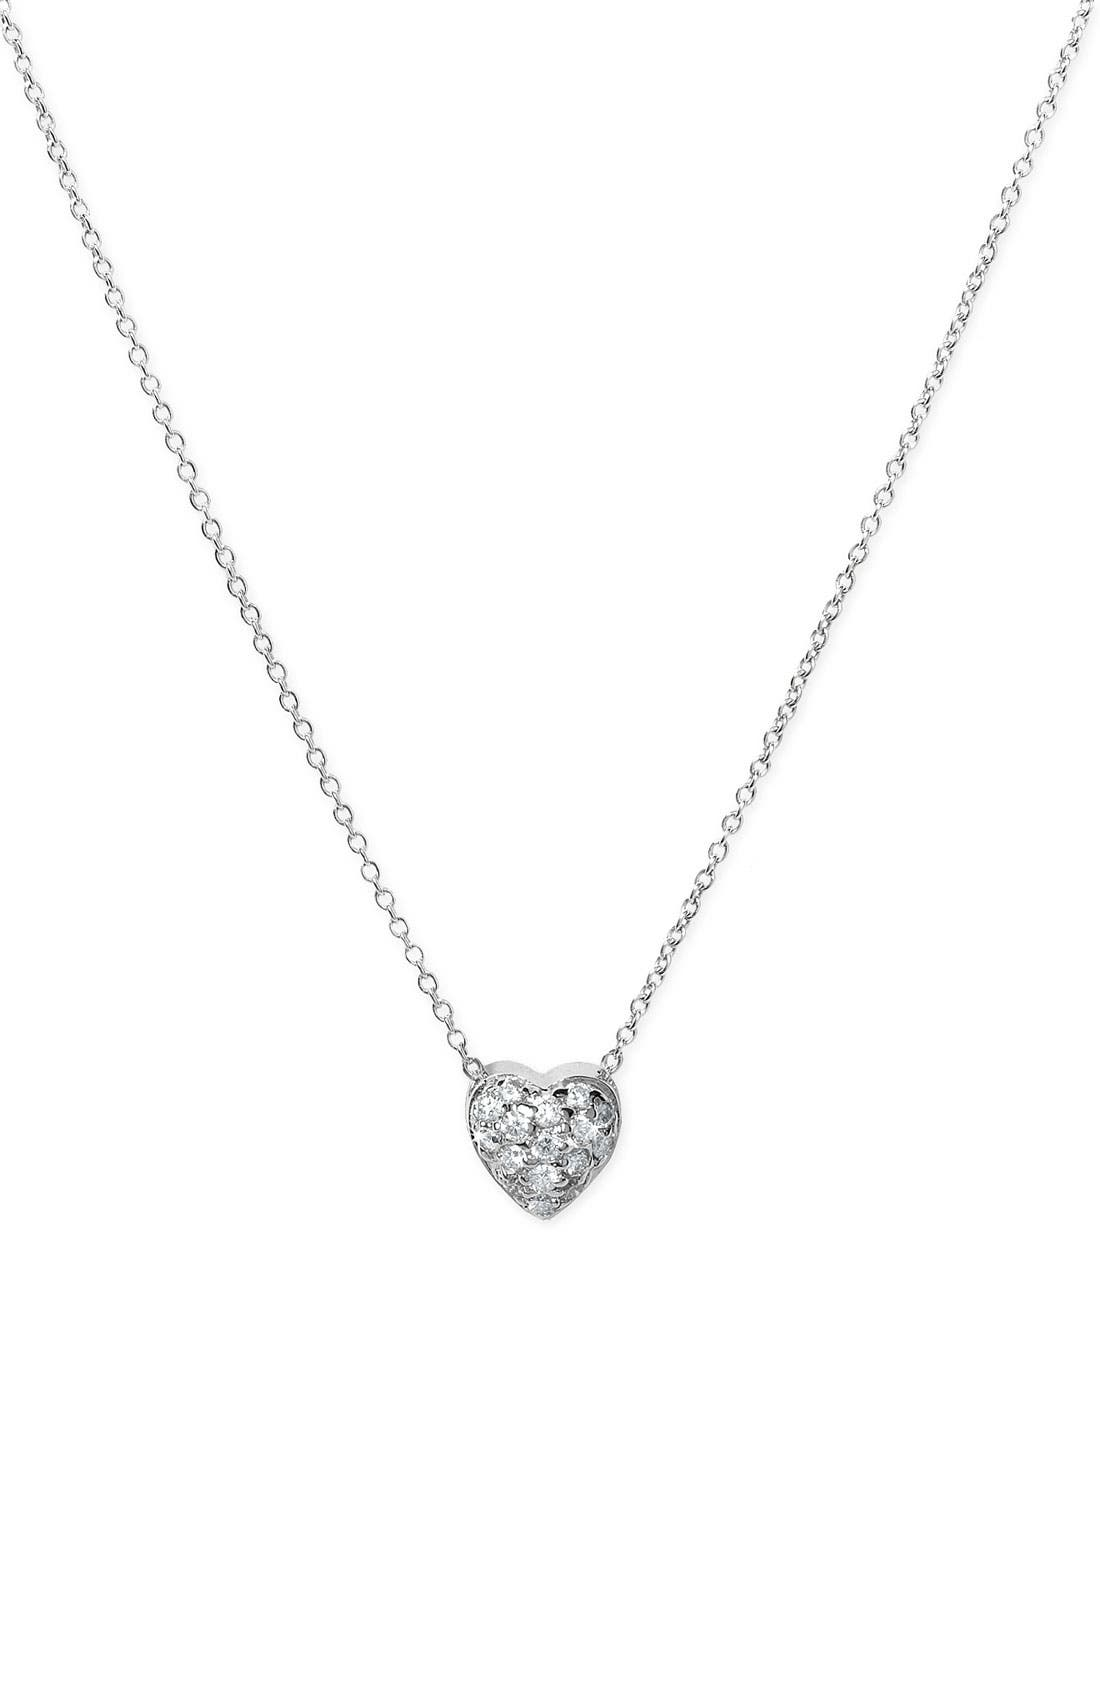 Main Image - Roberto Coin 'Tiny Treasures' Diamond Puffed Heart Pendant Necklace